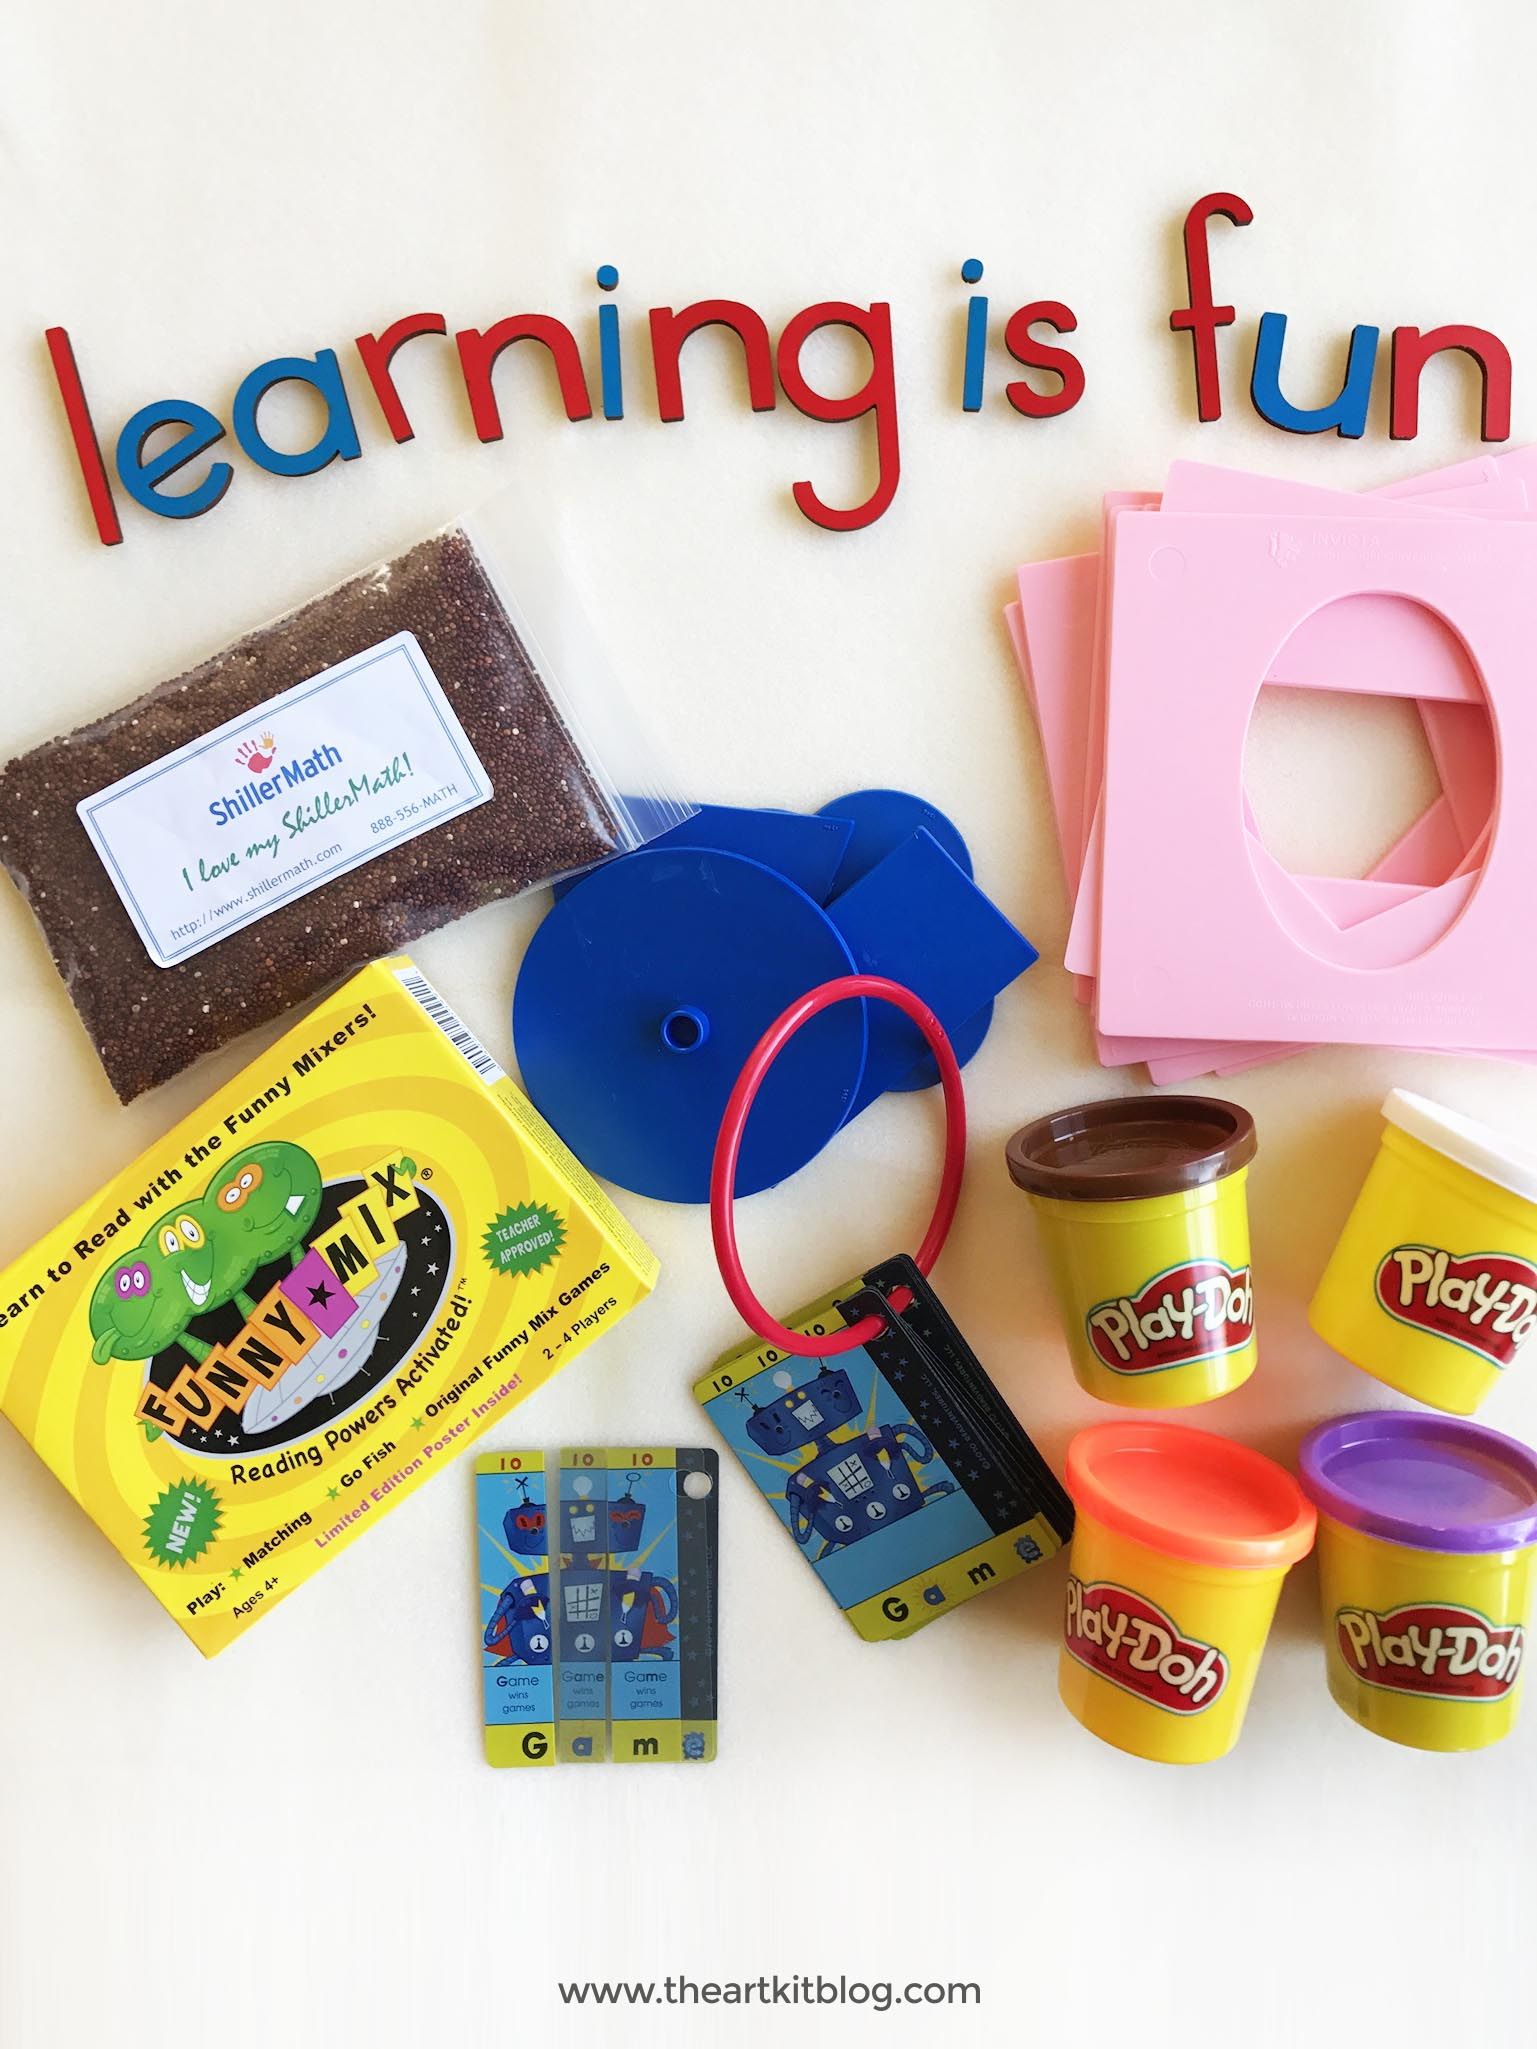 Shiller Math Montessori Language Arts Review The Art Kit Blog The